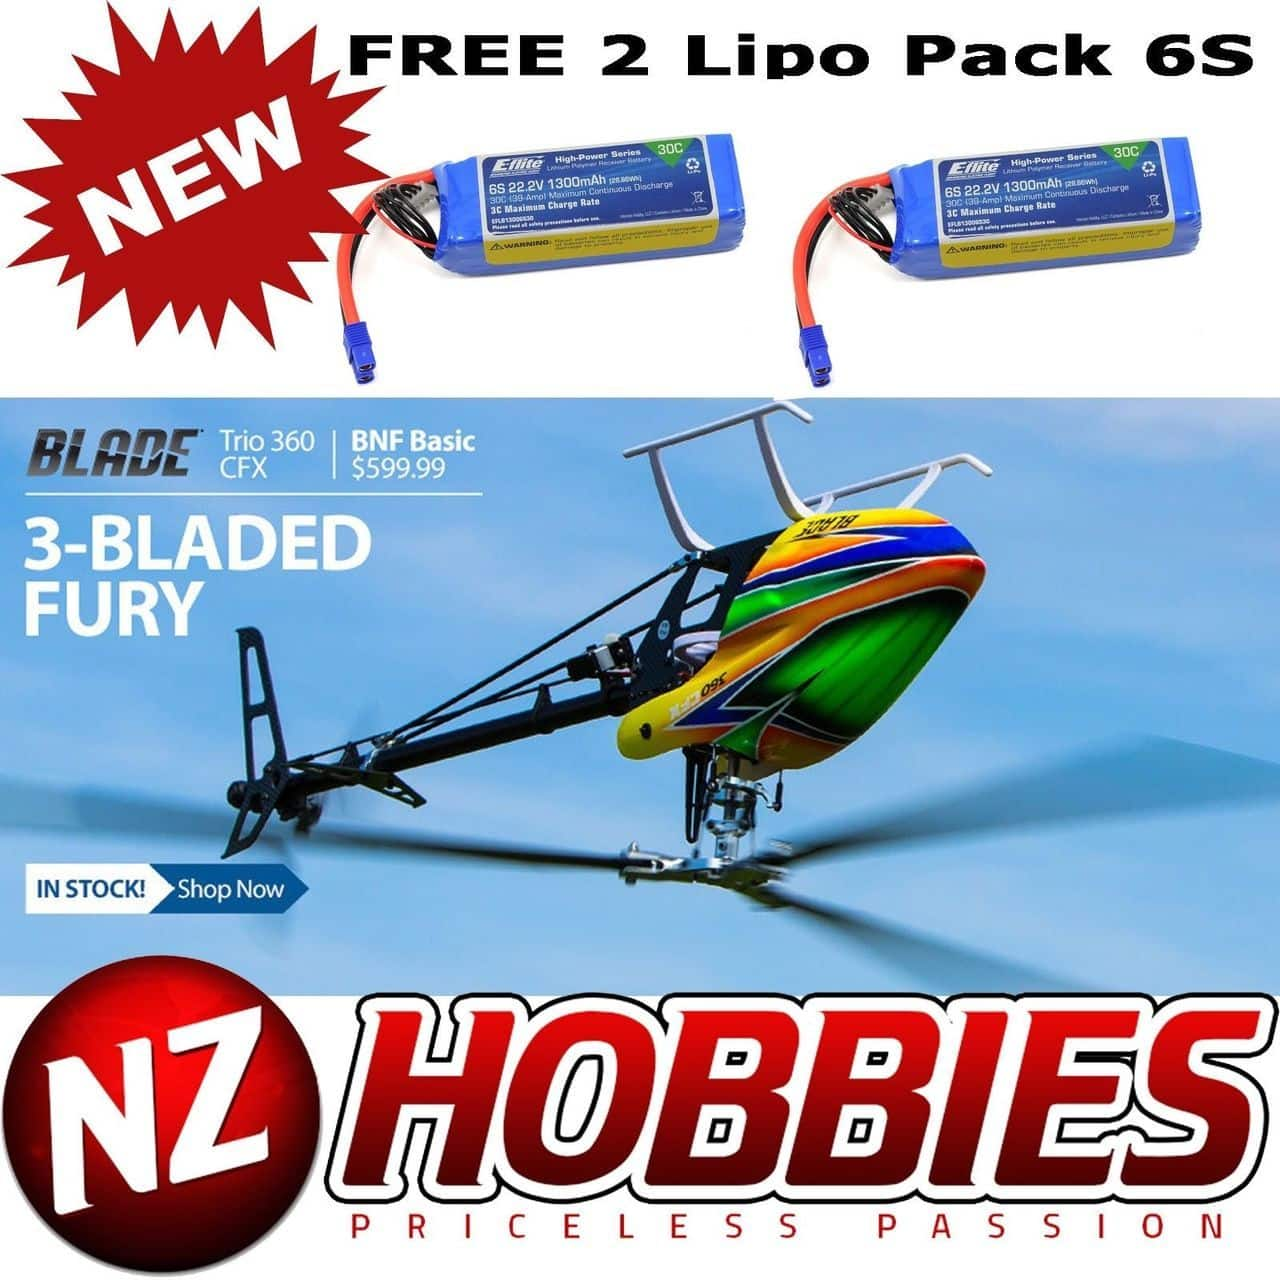 Blade BLH4755 Trio 360 CFX BNF Basic Helicopter w/ Free 2X 6S Lipo Battery $599.99